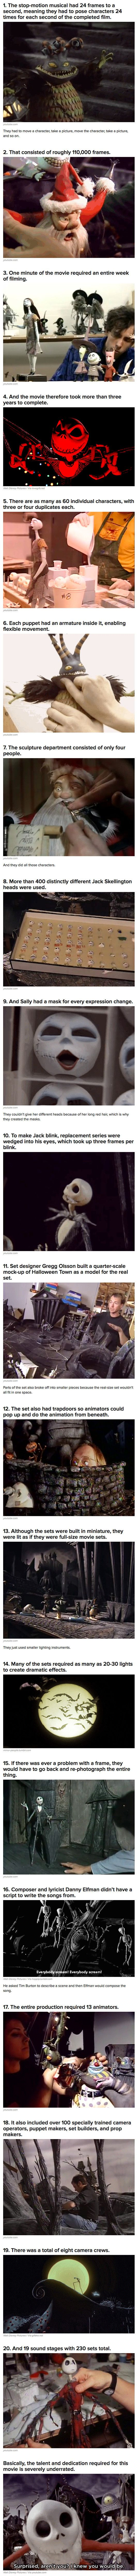 Here are some geeky things you probably did not know about the making of The Nightmare Before Christmas.